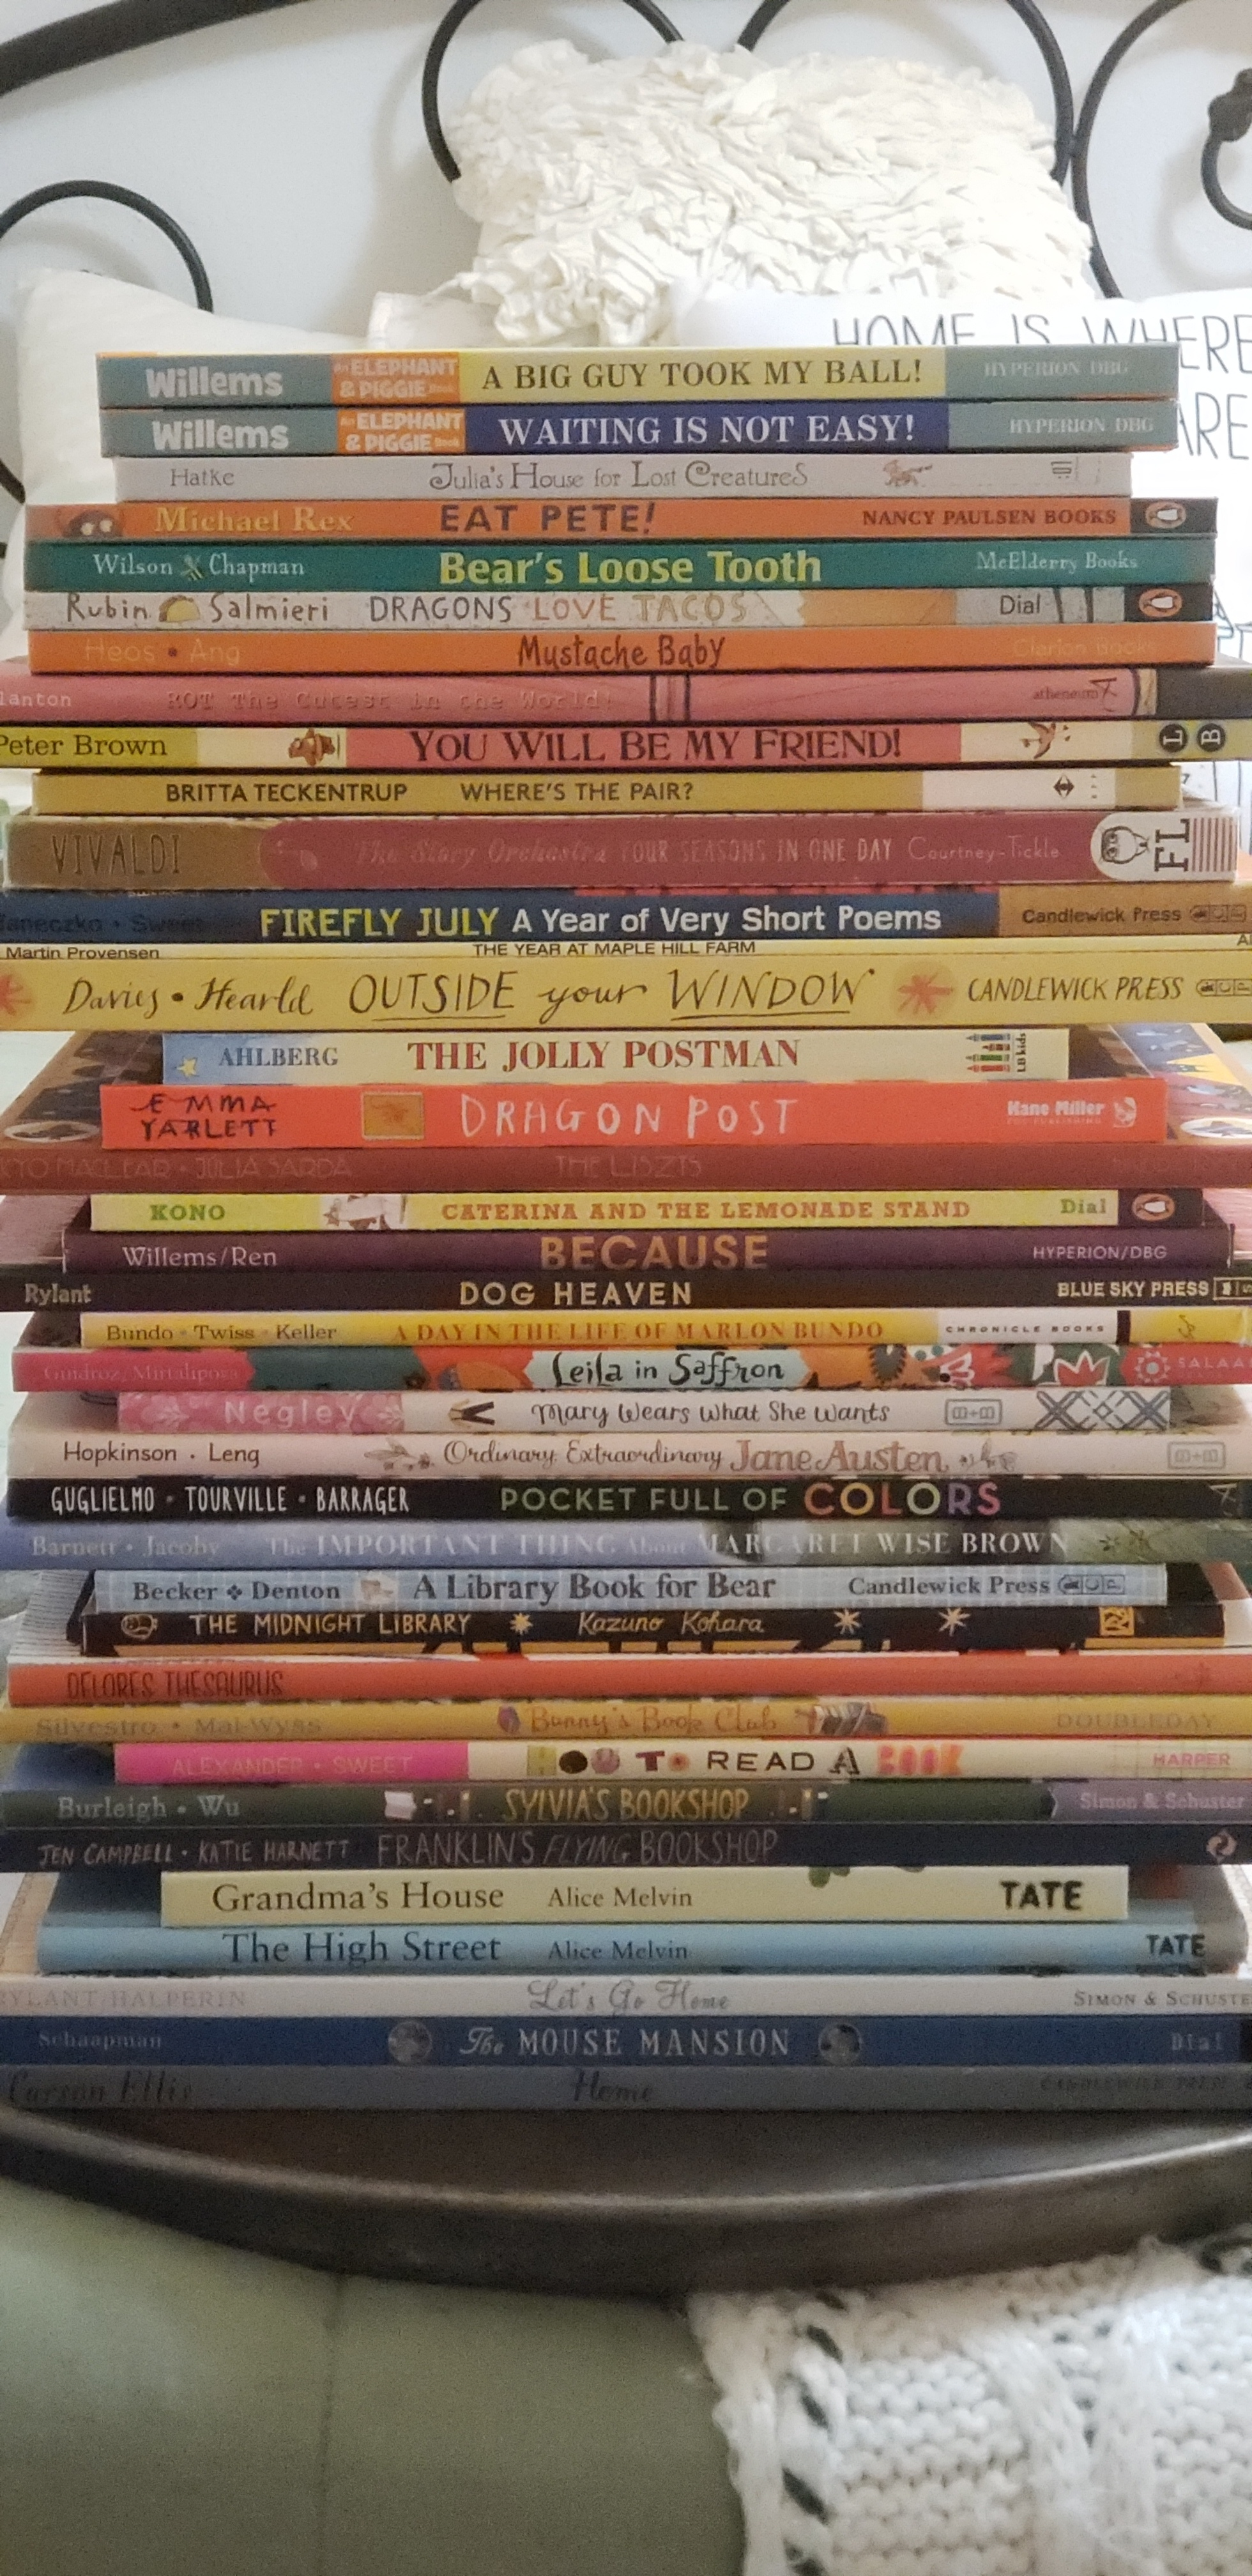 Abbey's Book Stack of the books she DIDN'T include!